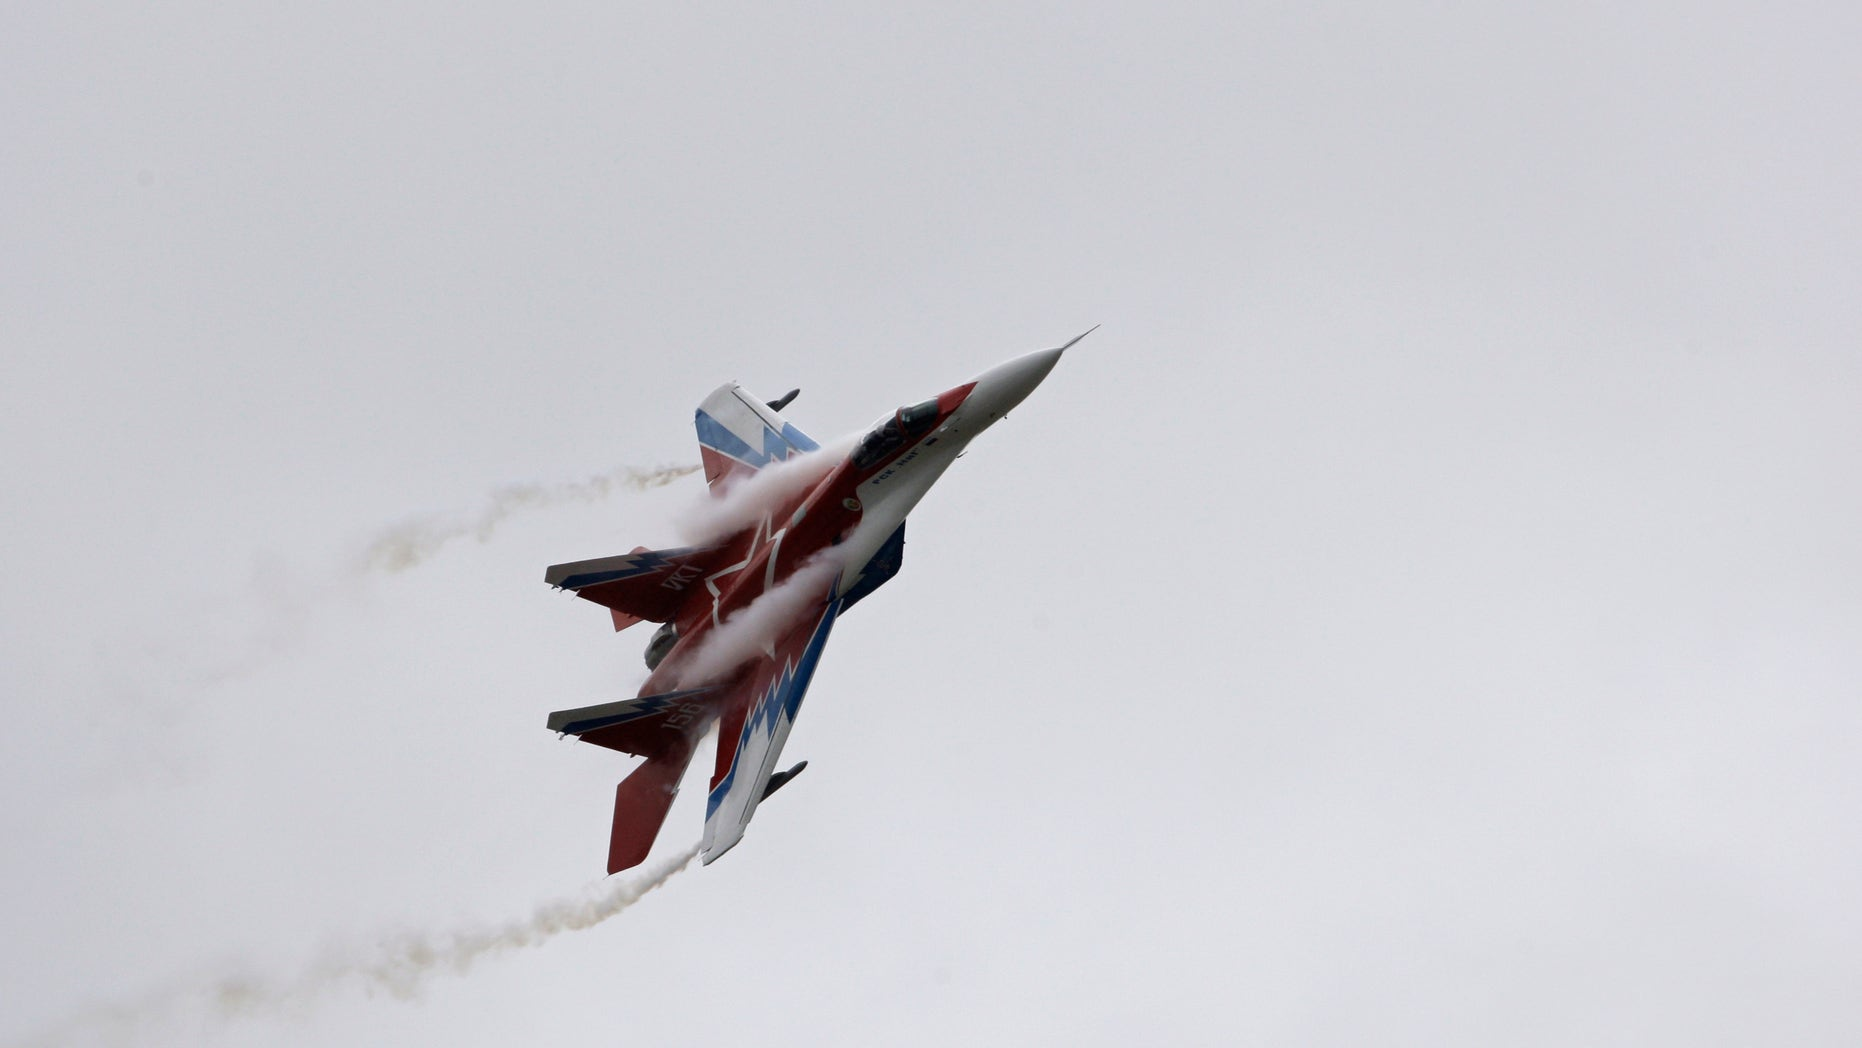 Aug. 21, 2009  -FILE photo, a Russian-made MiG-29 jet fighter flown by the aerobatic team Strizhi (Swifts) perform during the International Aviation and Space Show in Zhukovsky, outside Moscow, Russia.